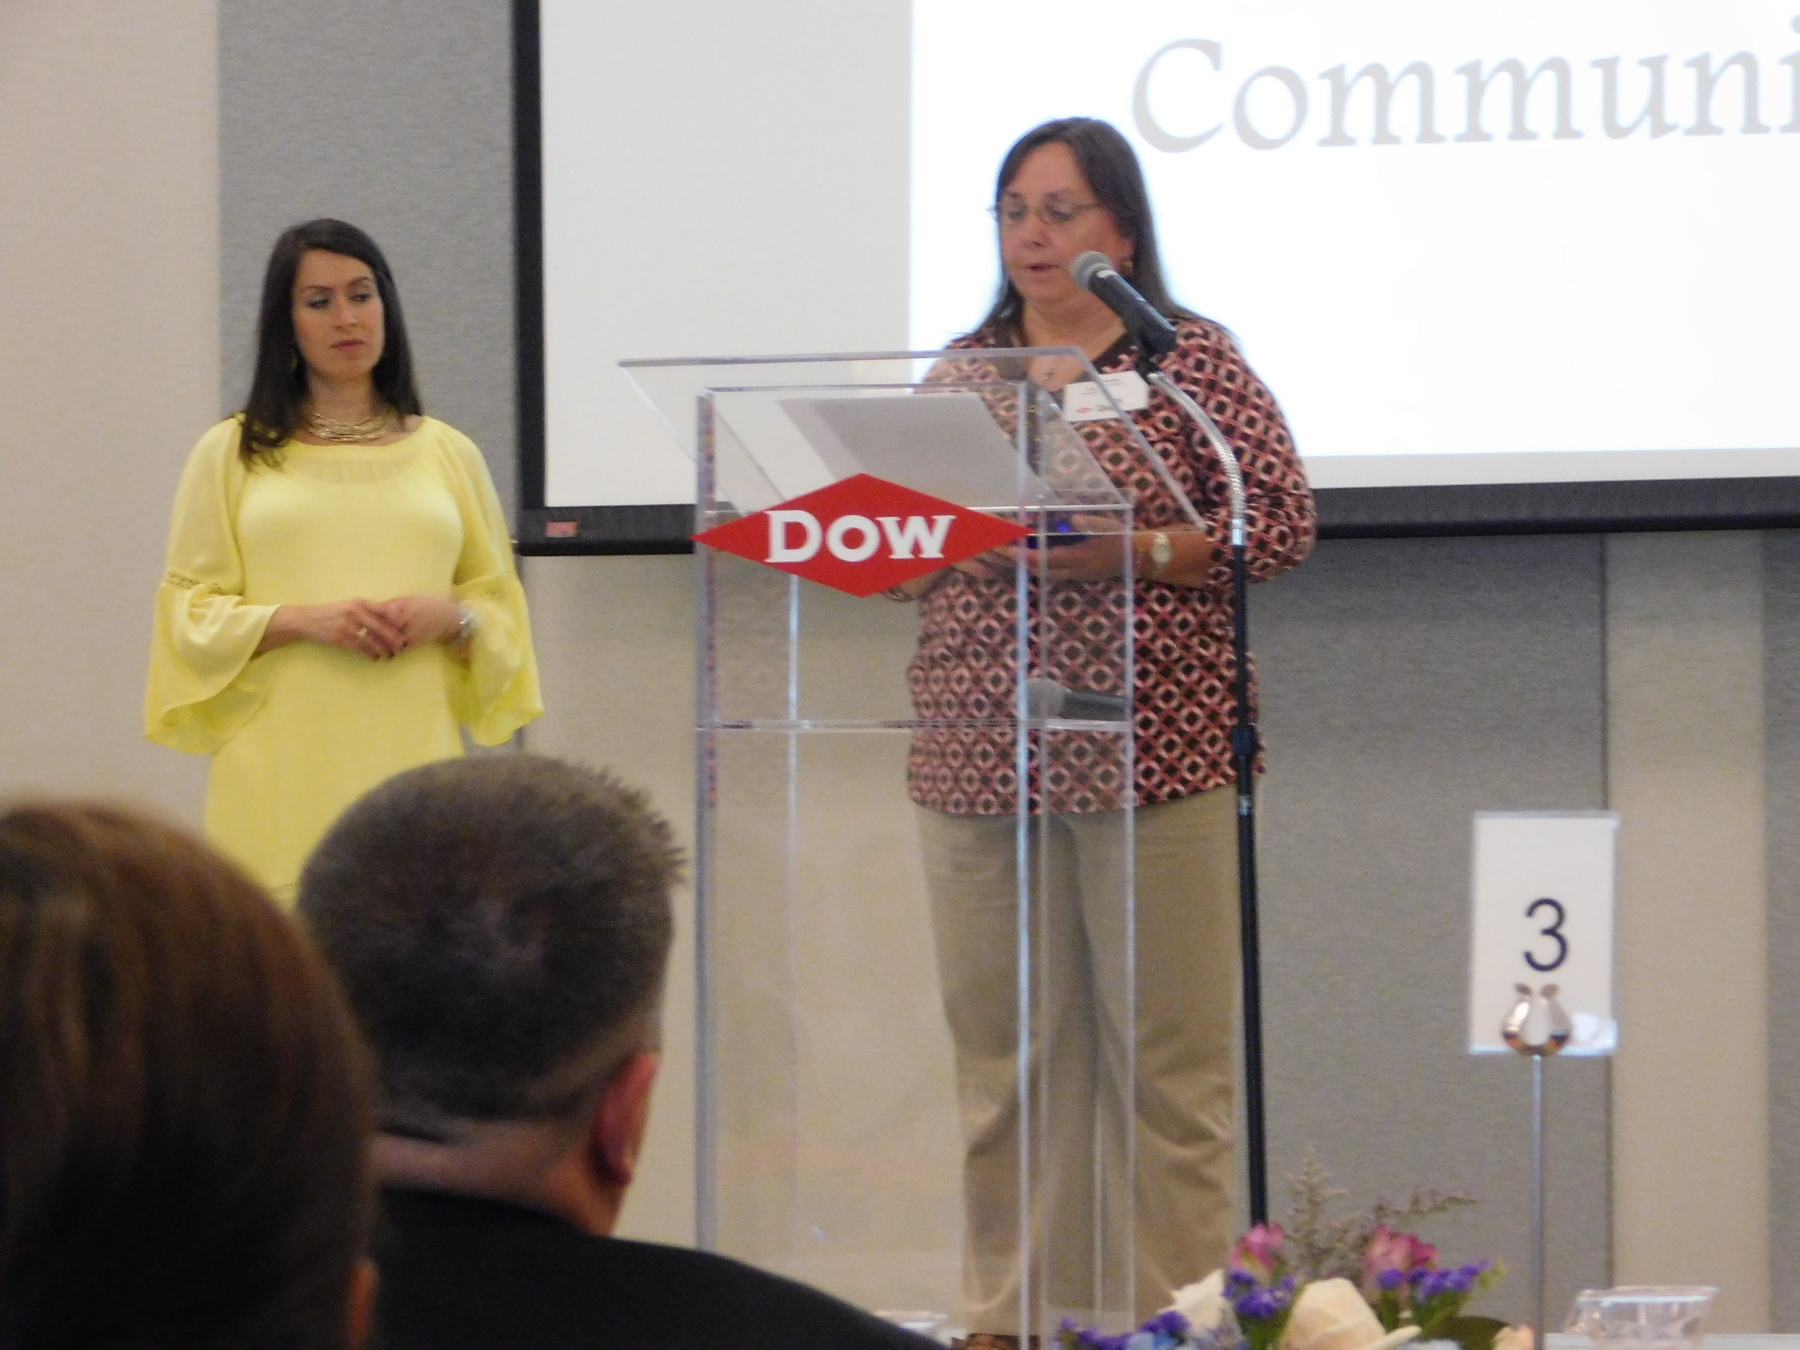 Lisa Owsley providing Food Basket information for DOW grant.JPG